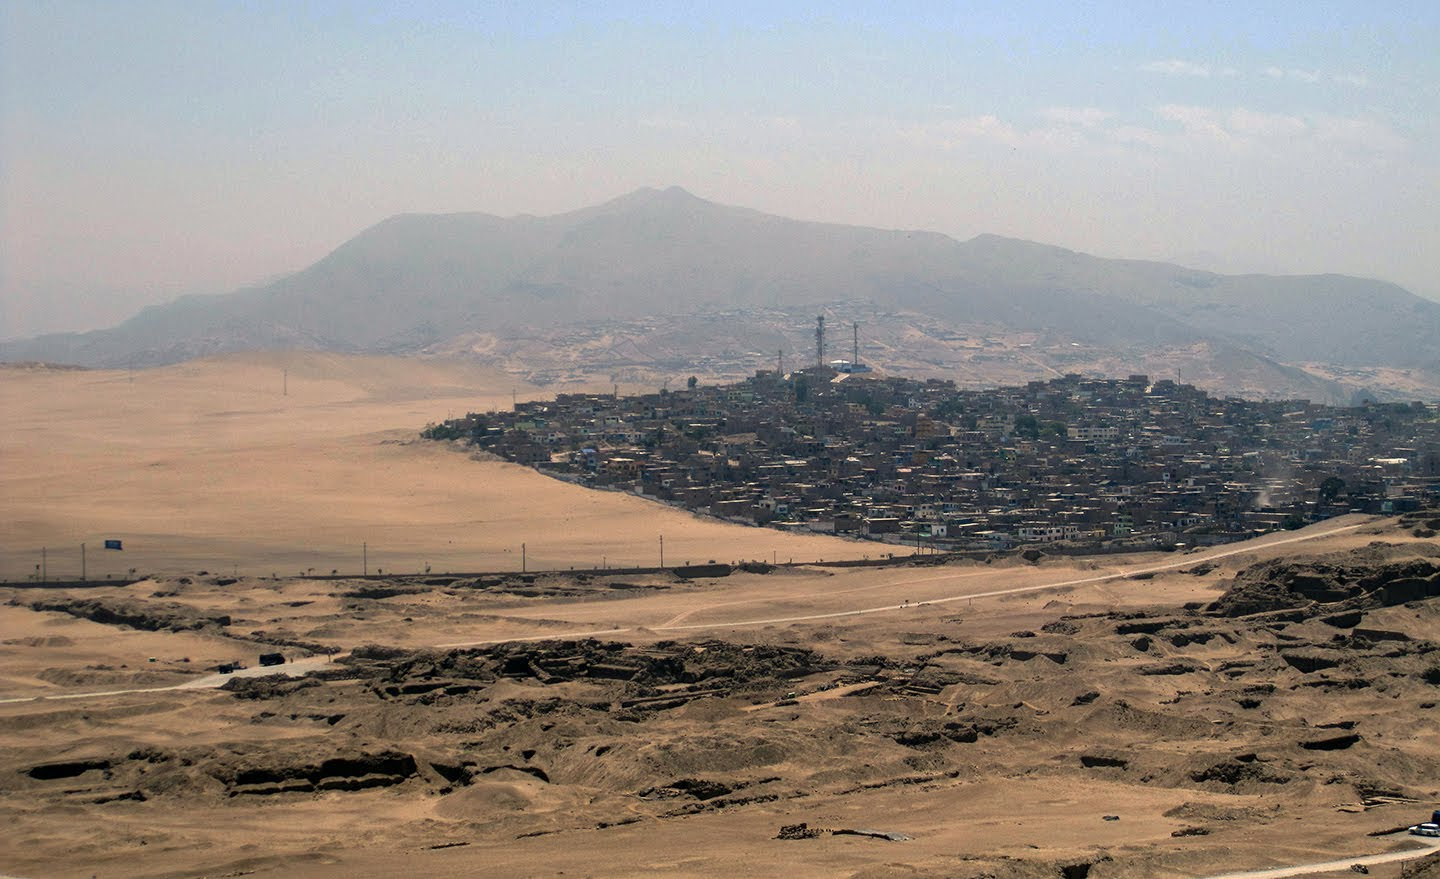 Julio Cesar Tello informal settlement encroaching on the eastern edge of Pachacamac.